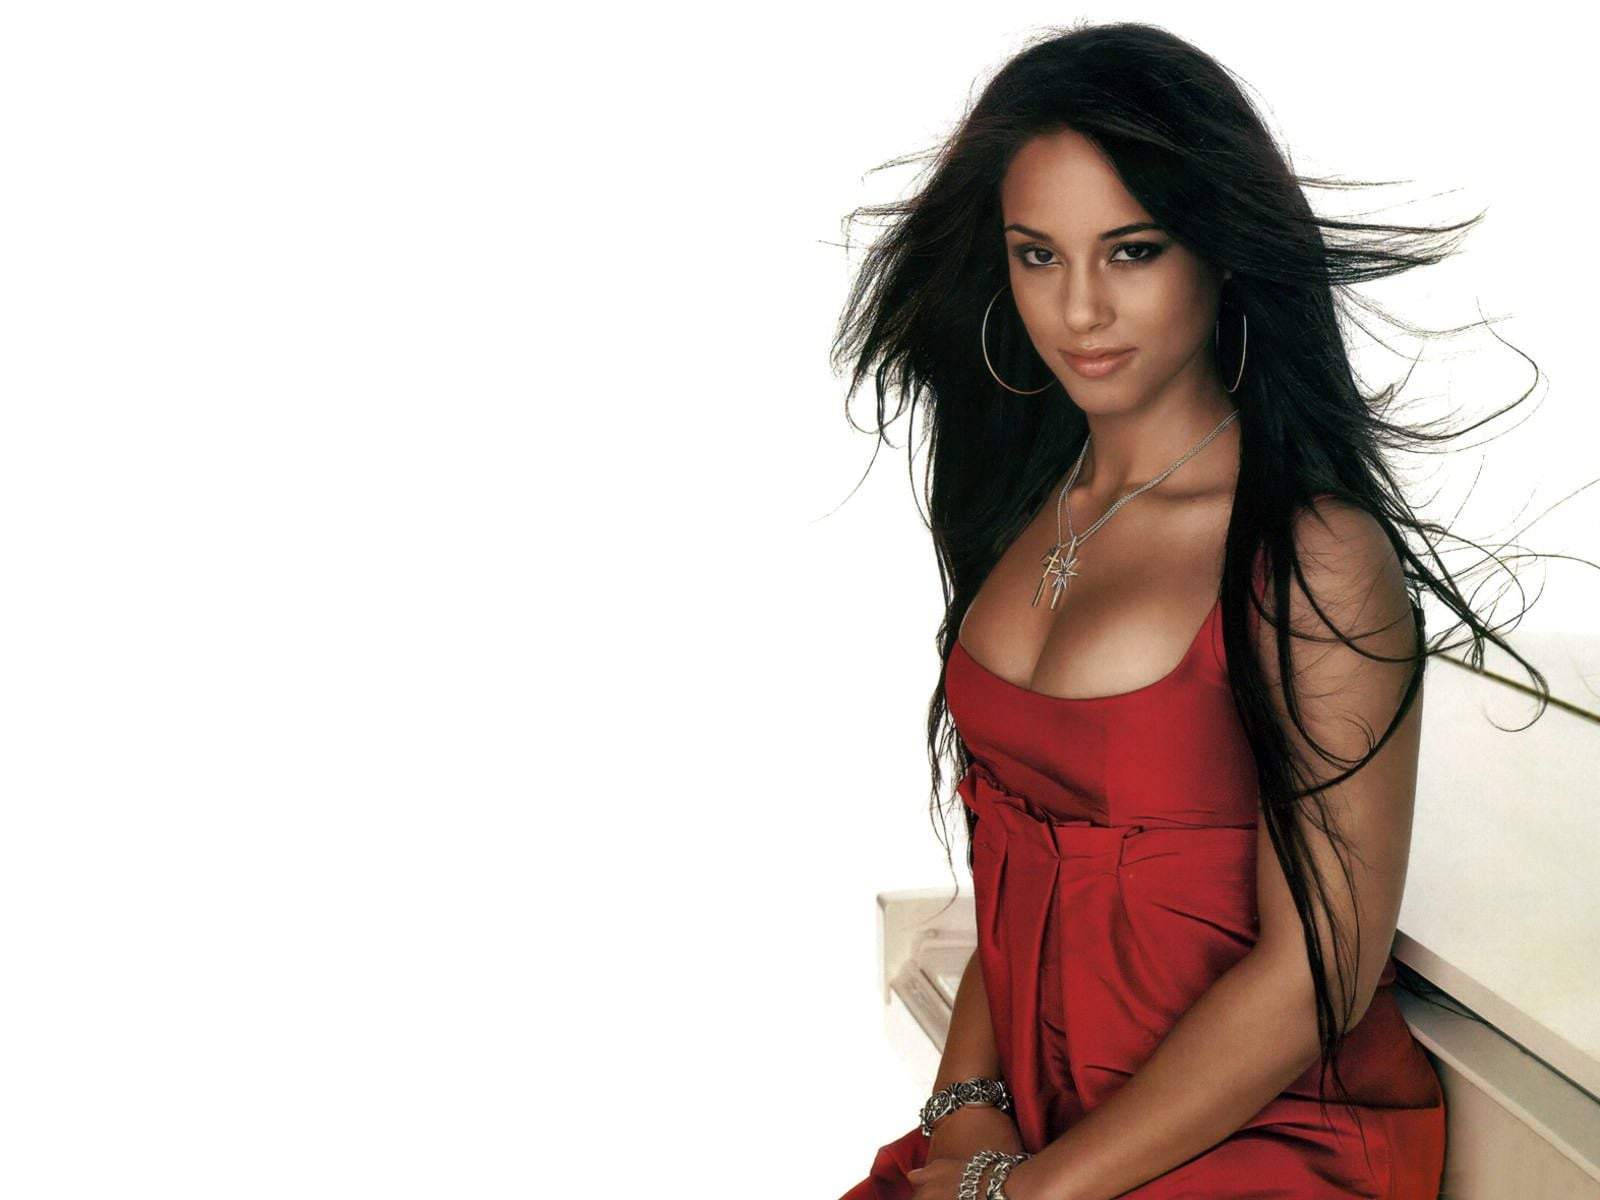 Cute Wallpaper Hd For Android 31 Alicia Keys Wallpapers Hd Download